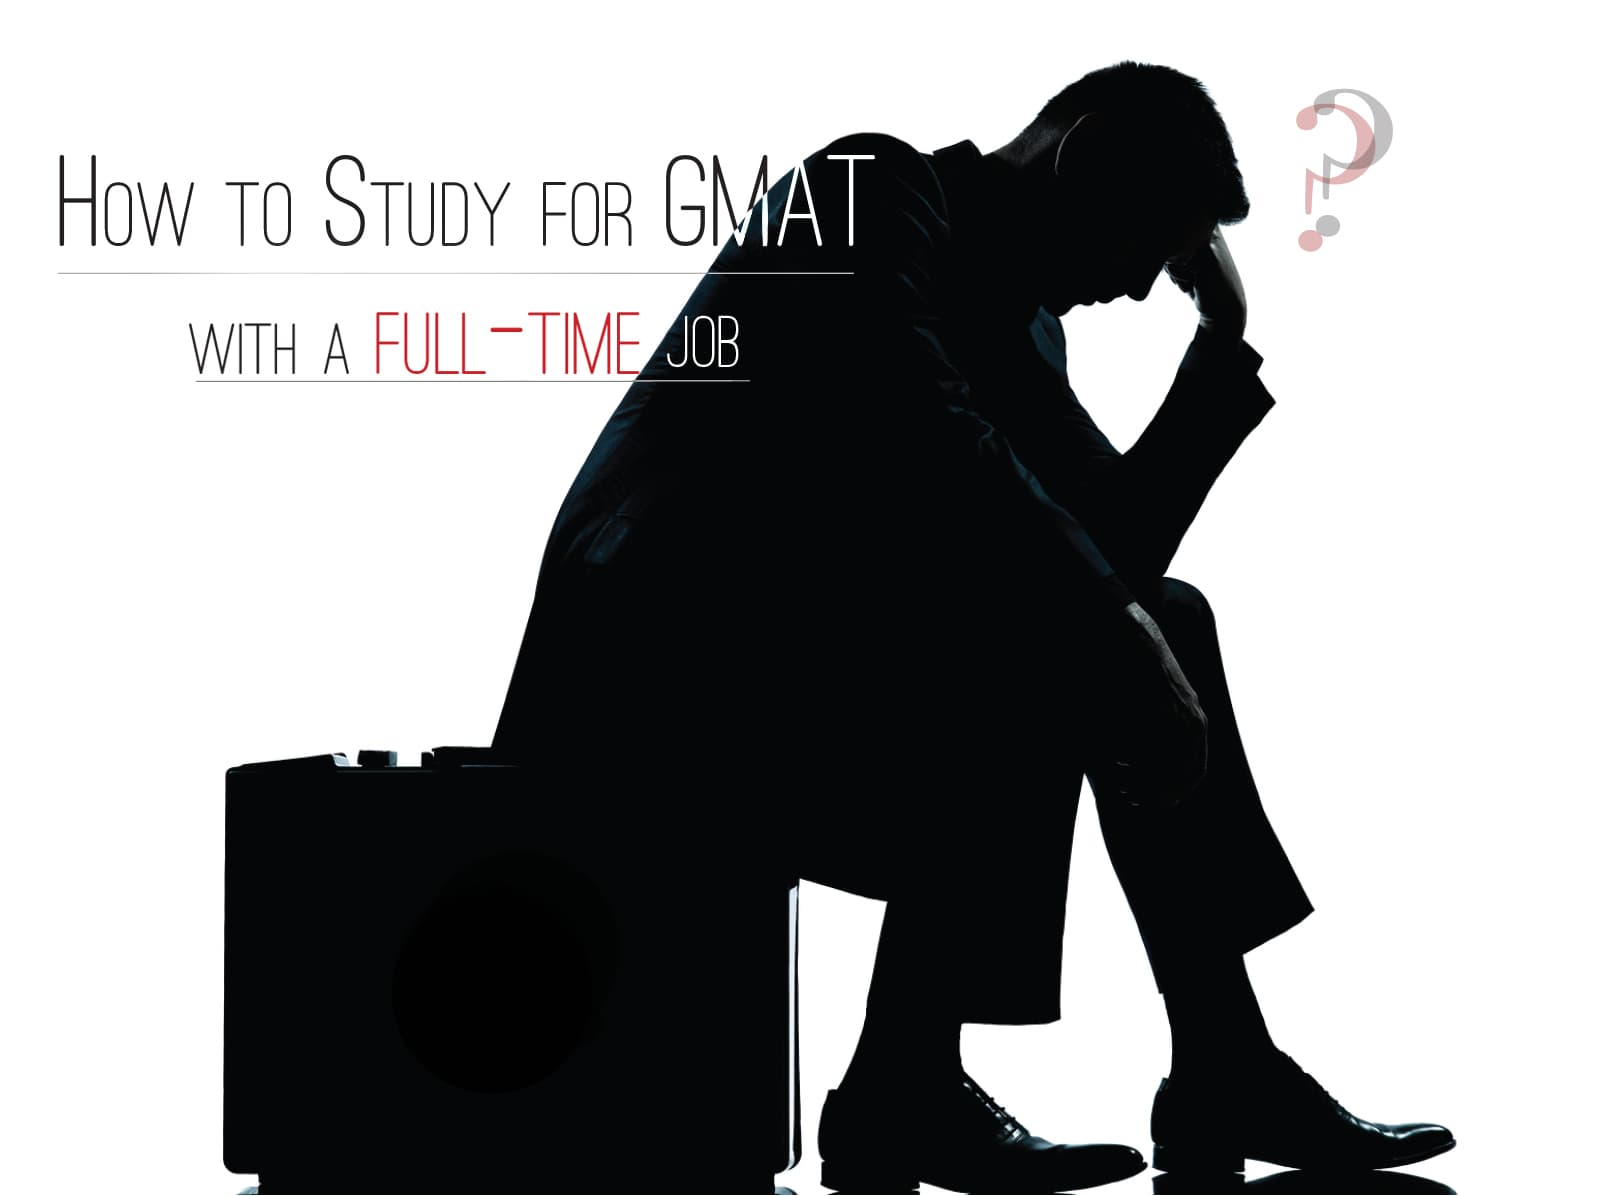 How to Study for GMAT with a Full-Time Job